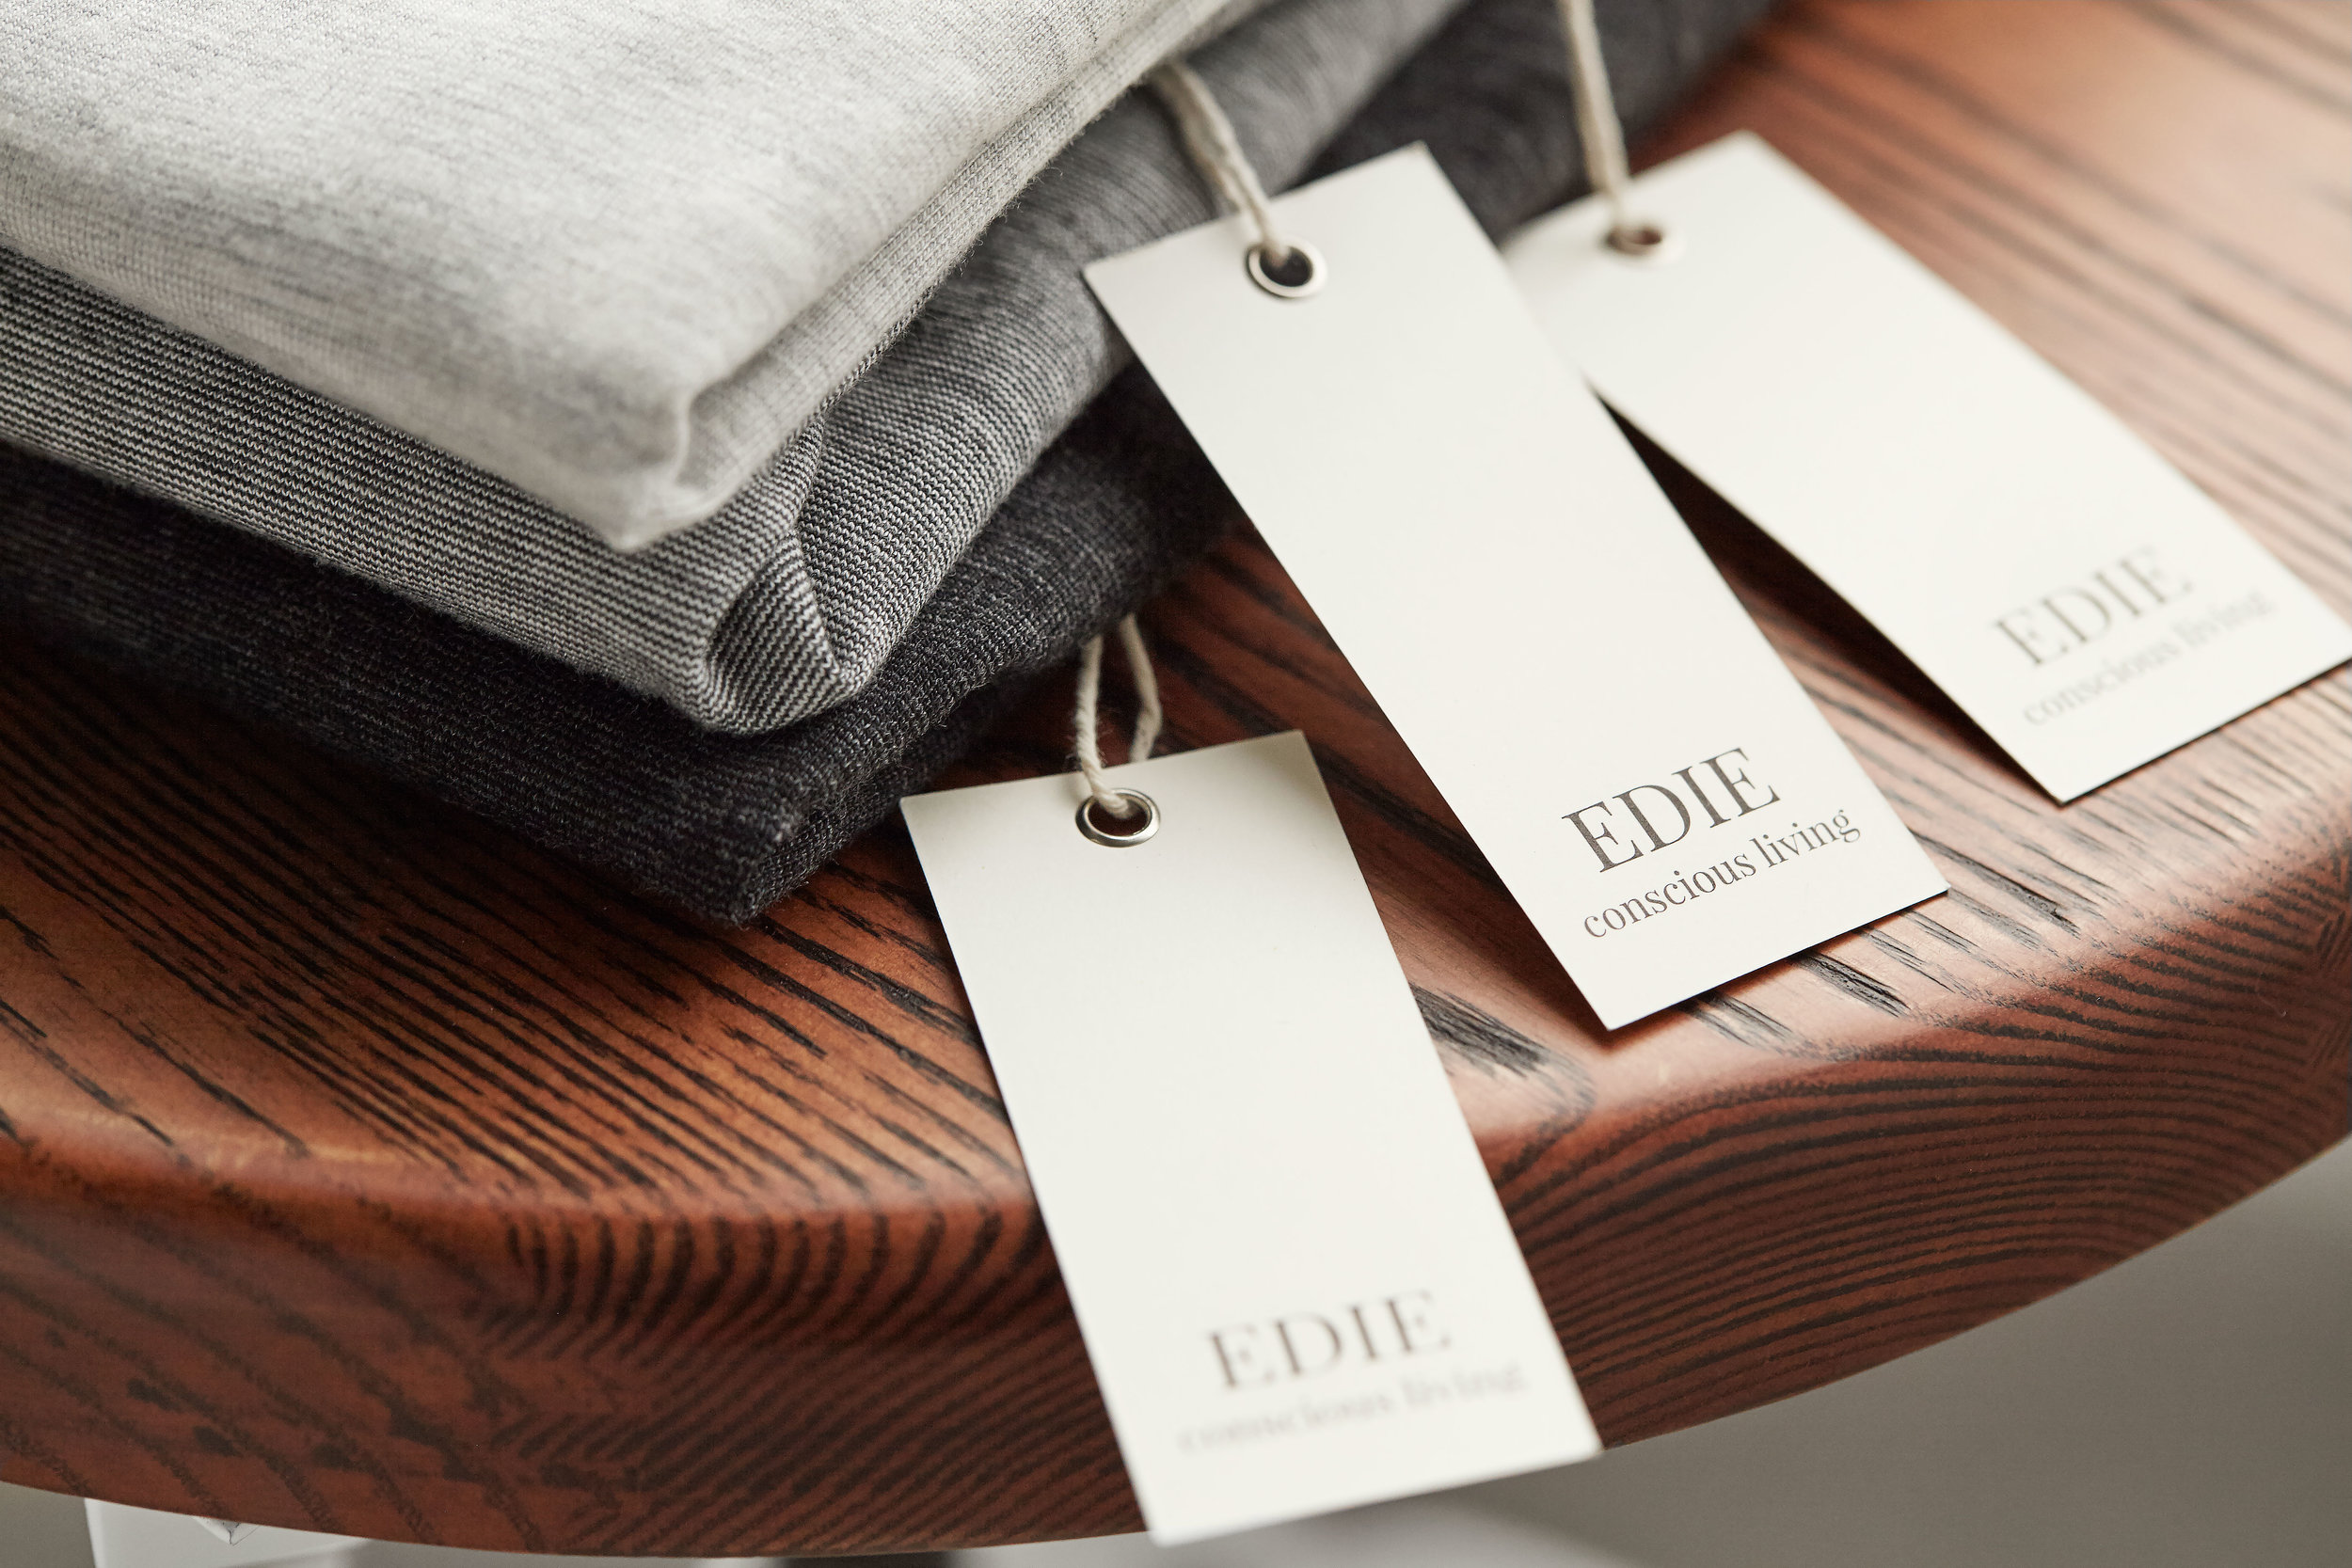 ethically manufactured  - Our philosophy has always been to prioritize the integrity of our work over the bottom line. For our signature Edie collection, we proudly work with American manufacturers and makers to ensure that all workers who make our products are treated with dignity in the workplace.